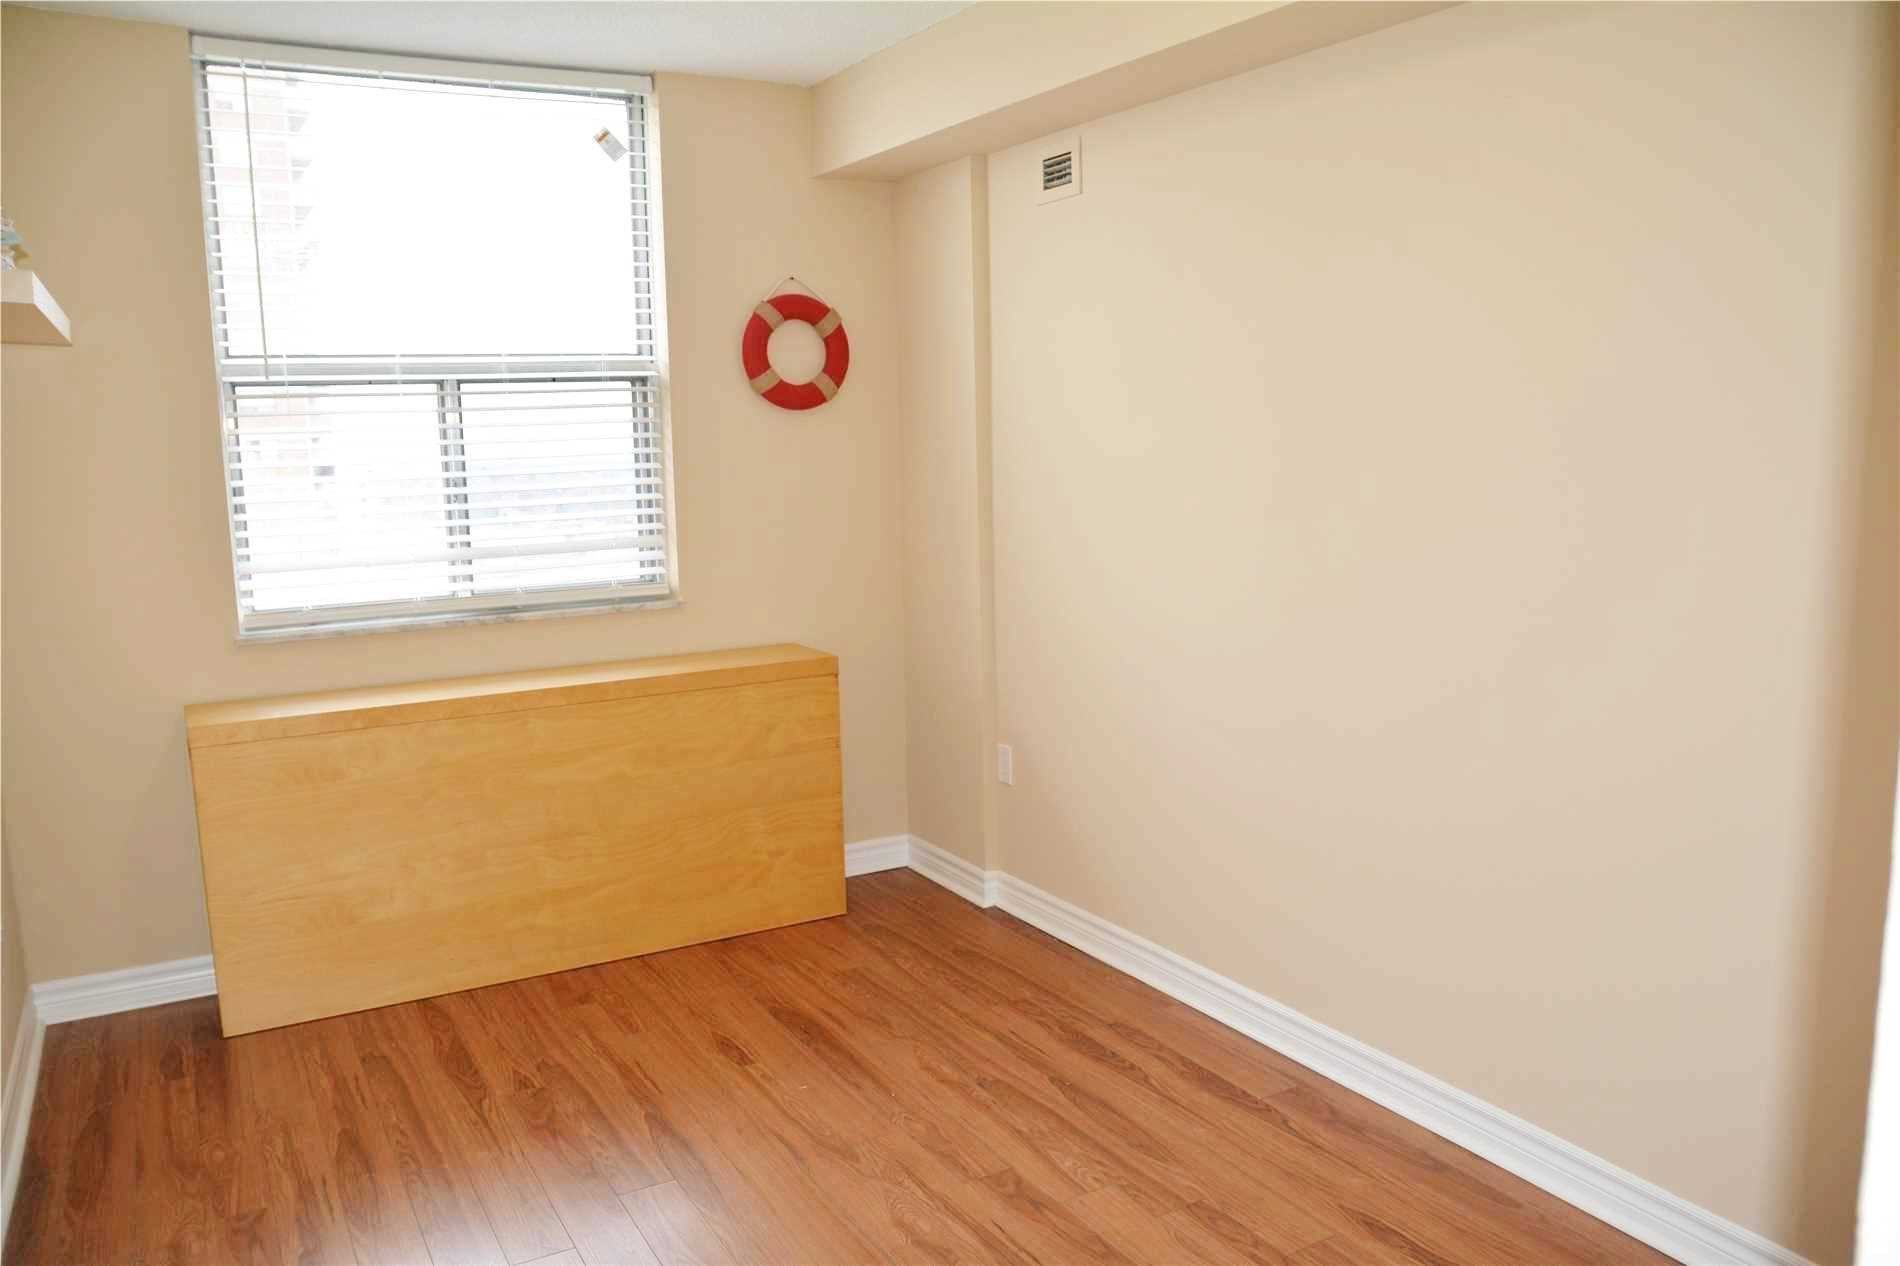 Image 3 of 14 showing inside of 3 Bedroom Condo Apt Apartment for Lease at 205 Hilda Ave Unit# 2104, Toronto M2M4B1